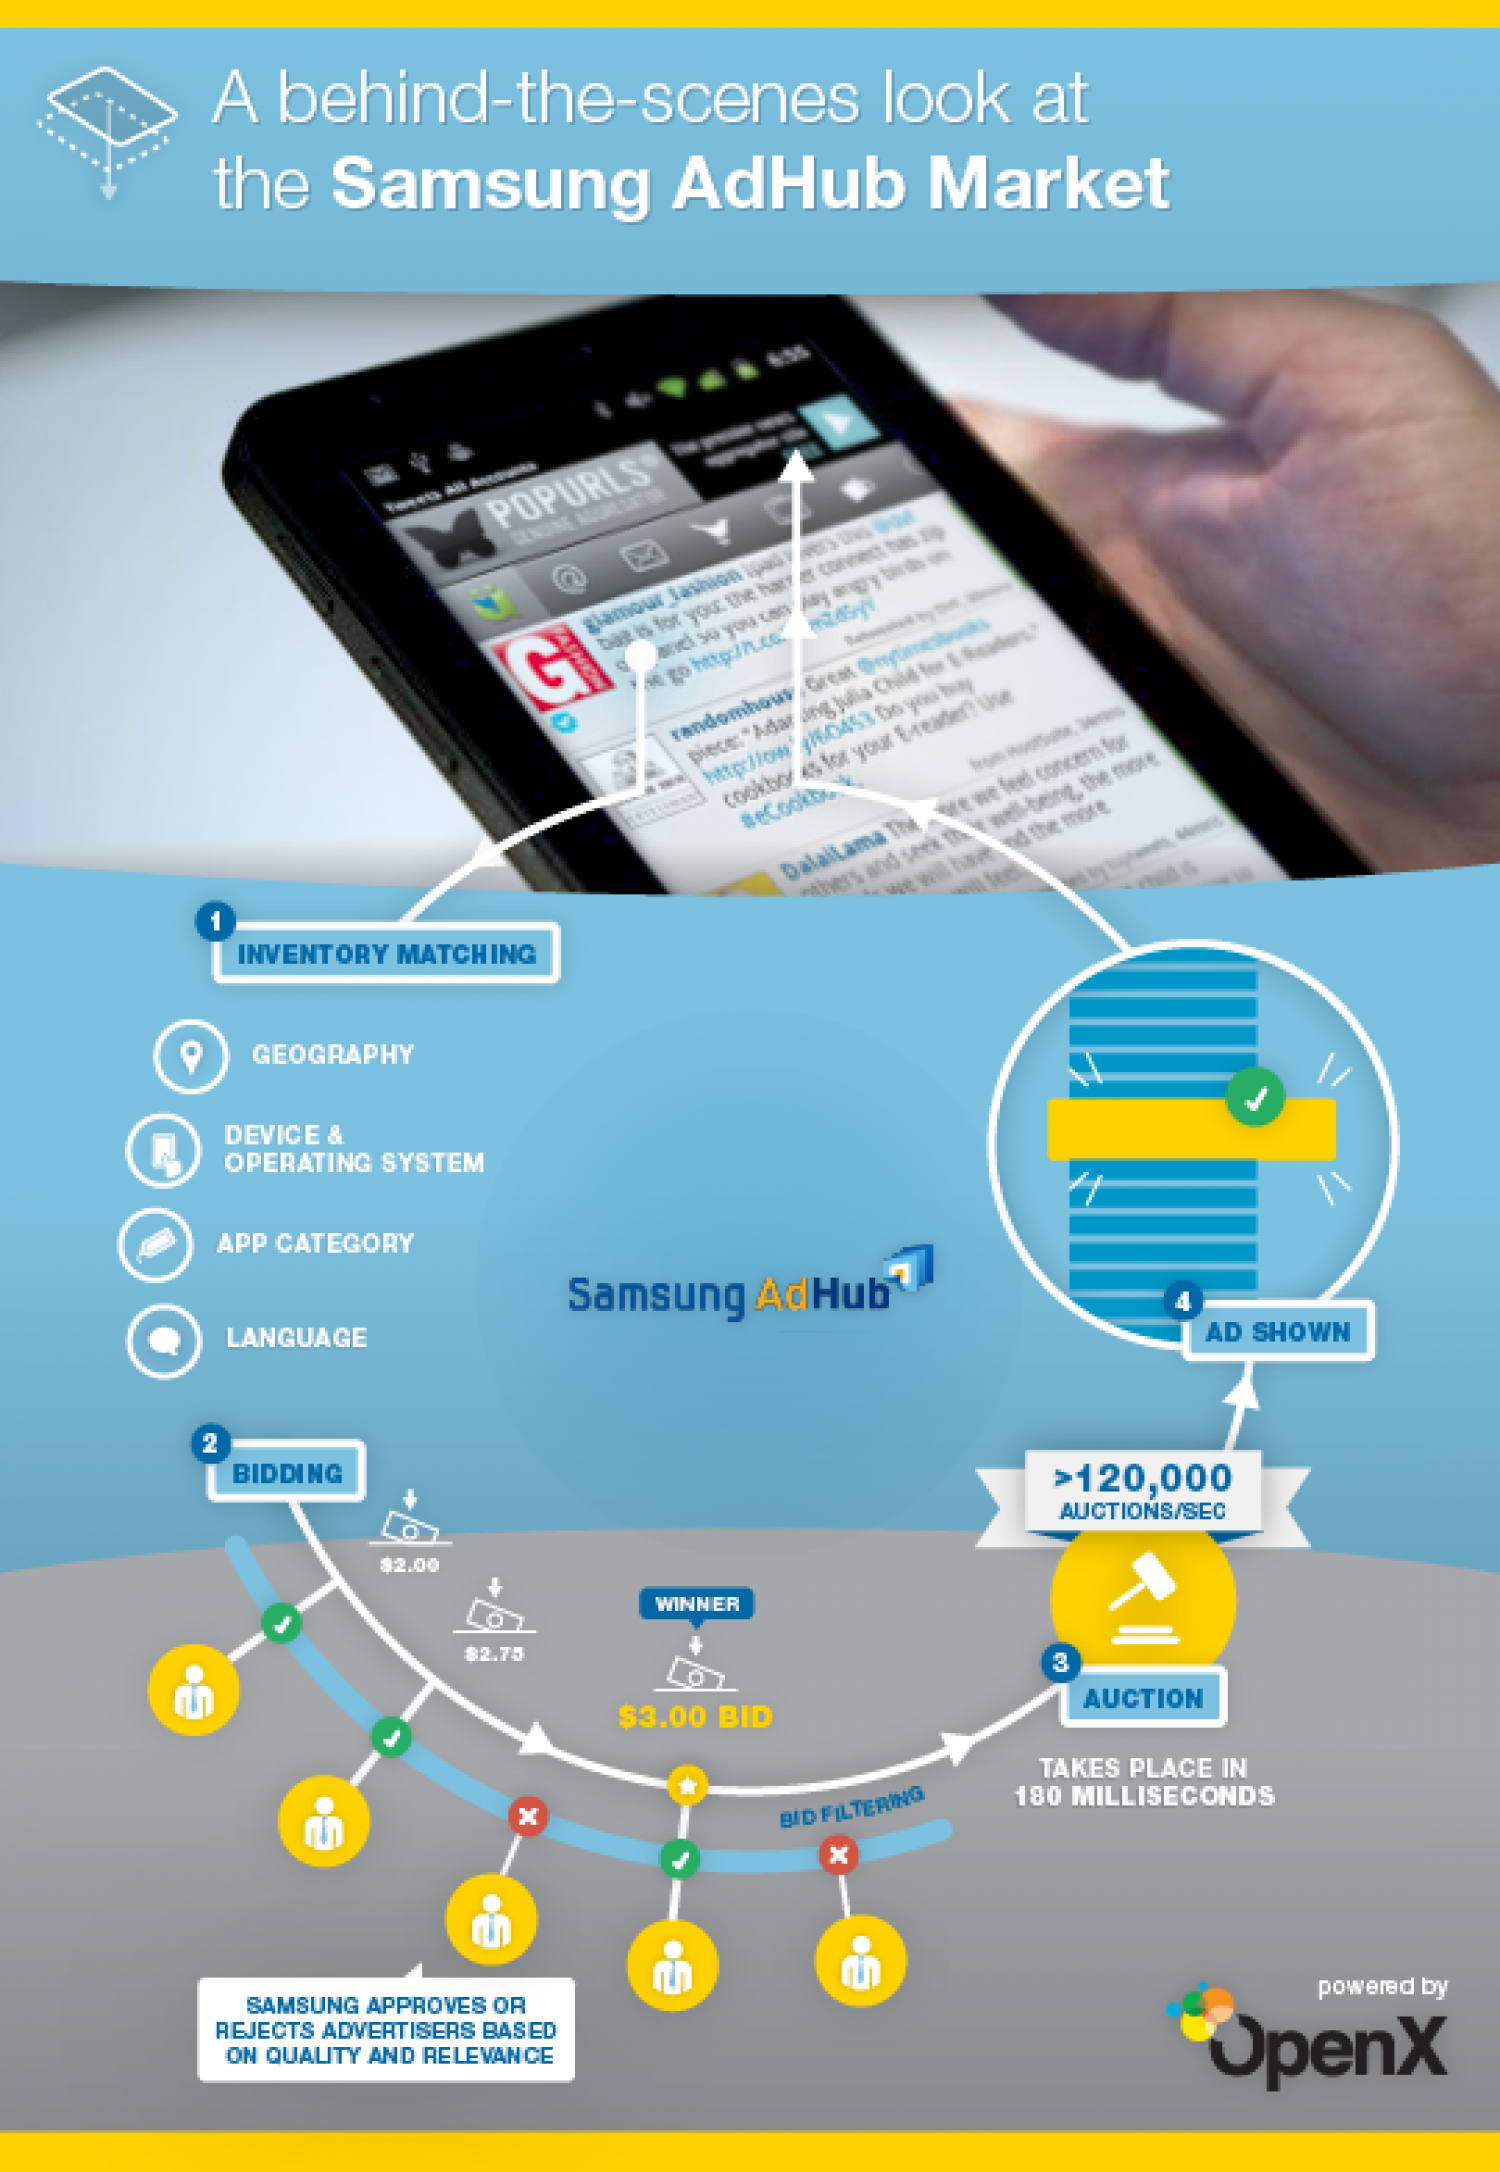 A behind-the-scenes look at the Samsung AdHub Market Infographic